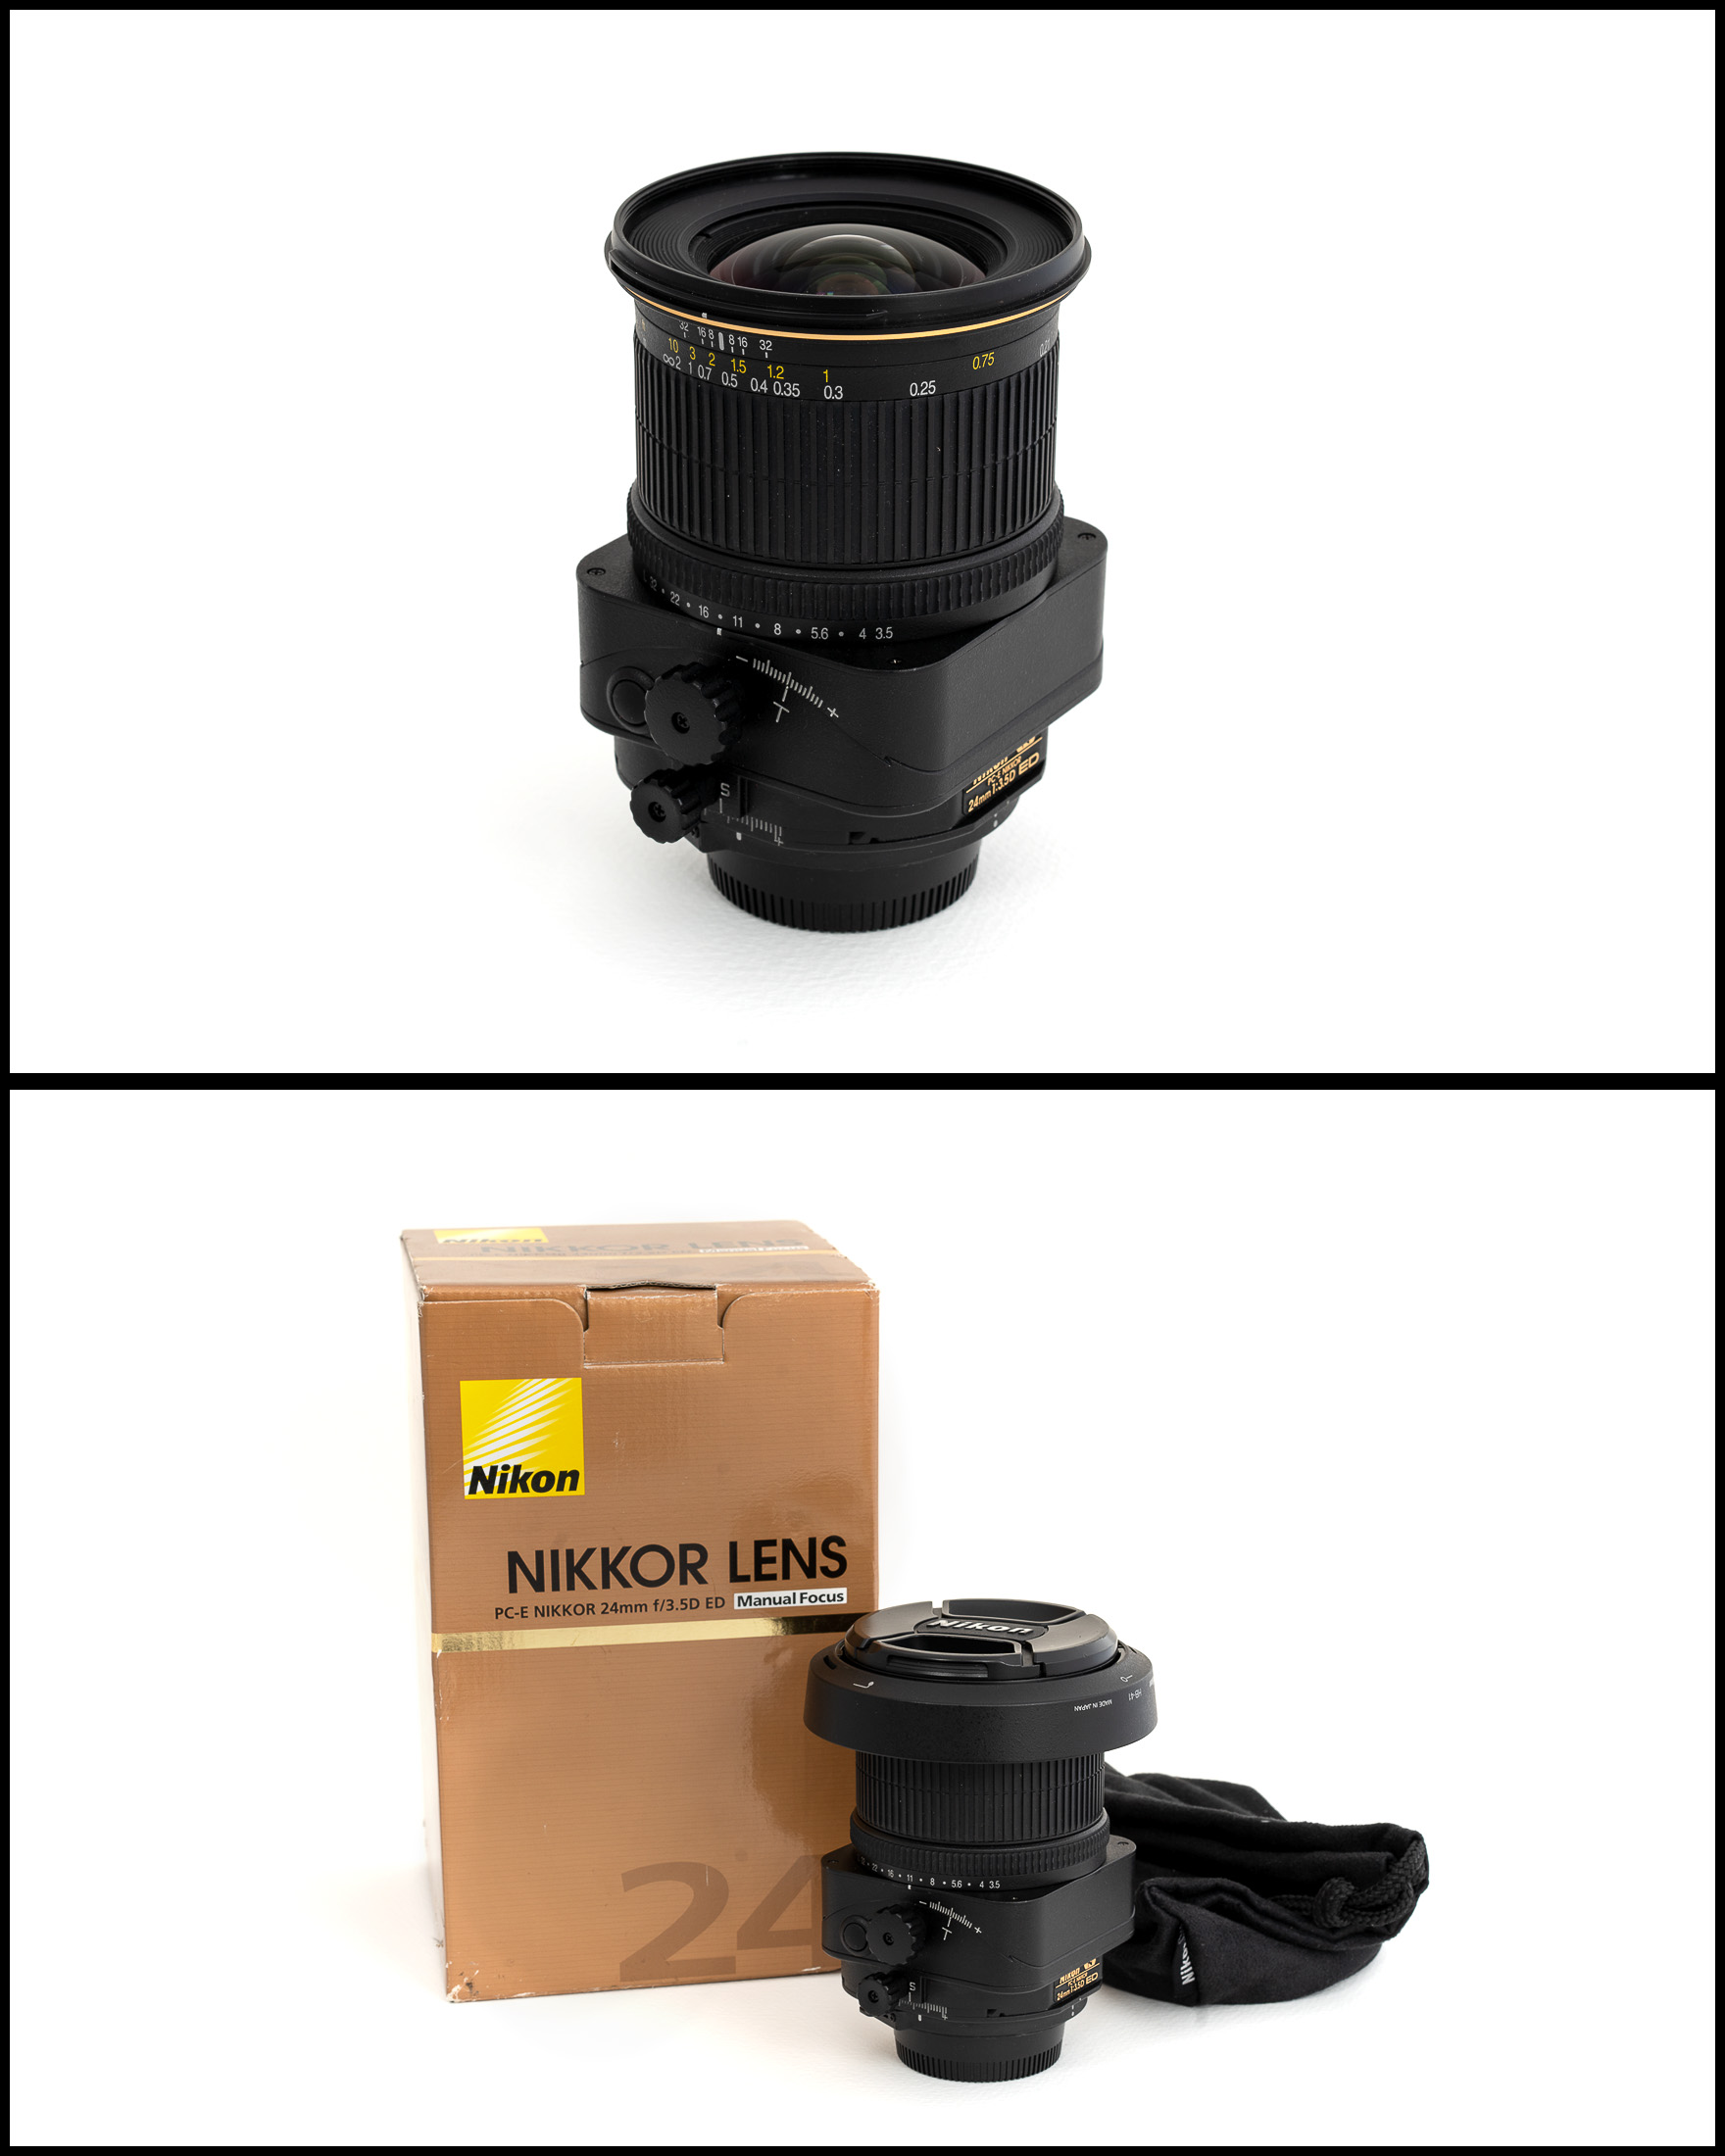 Nikkor/Nikon PC-E 24mm f3.5D ED    £950   In excellent condition comes with lens hood, front and rear caps, manual, pouch and original box.